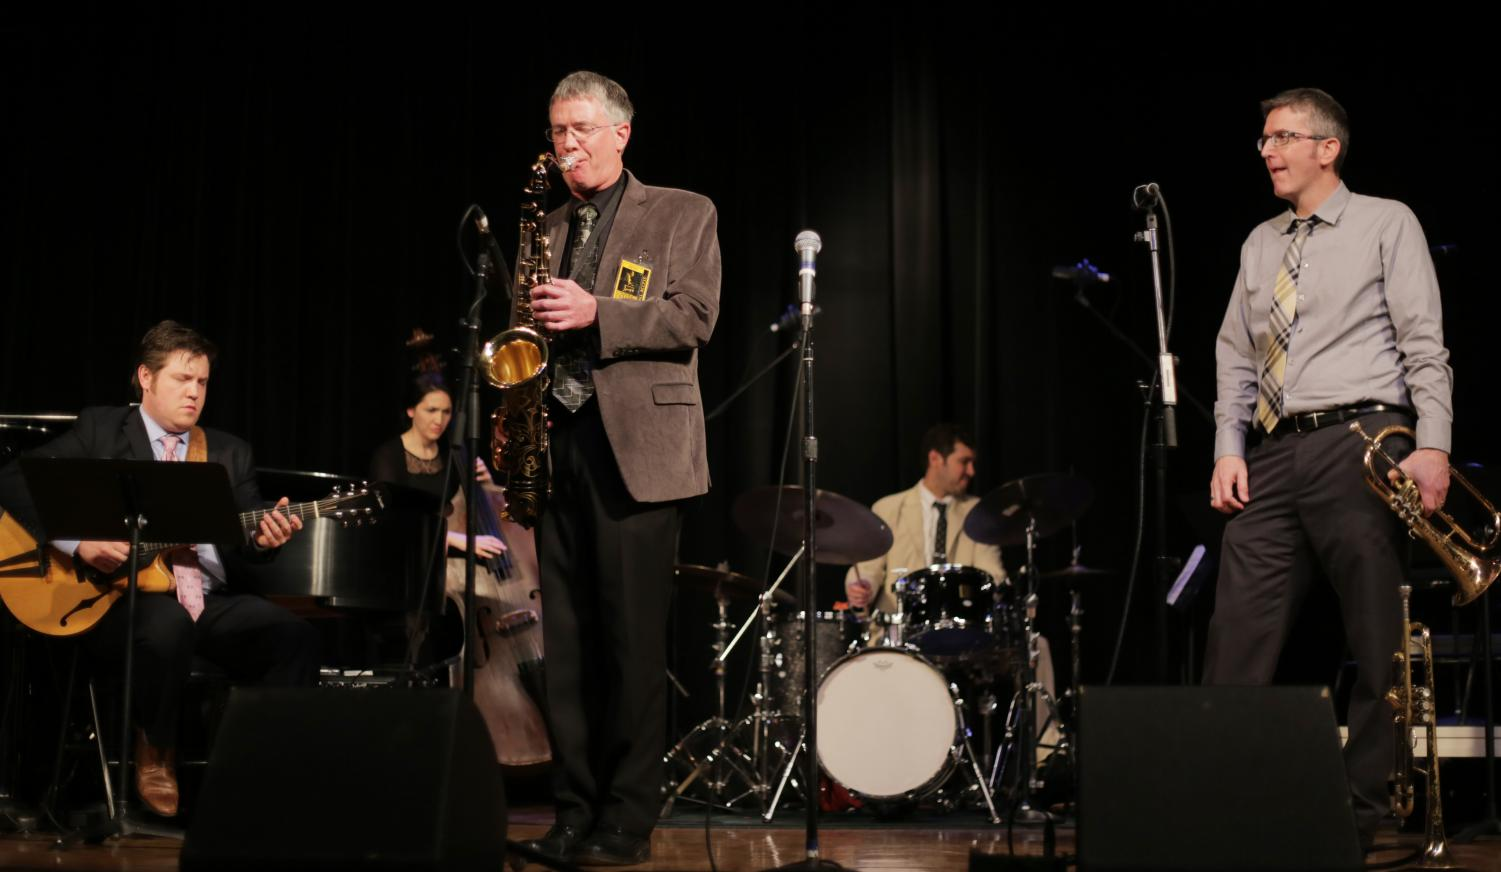 From left, Graham Dechter, Dave Hagelganz and Kevin Kanner, the All-Star Quartet, play at the 2016 Lionel Hampton Jazz Festival.